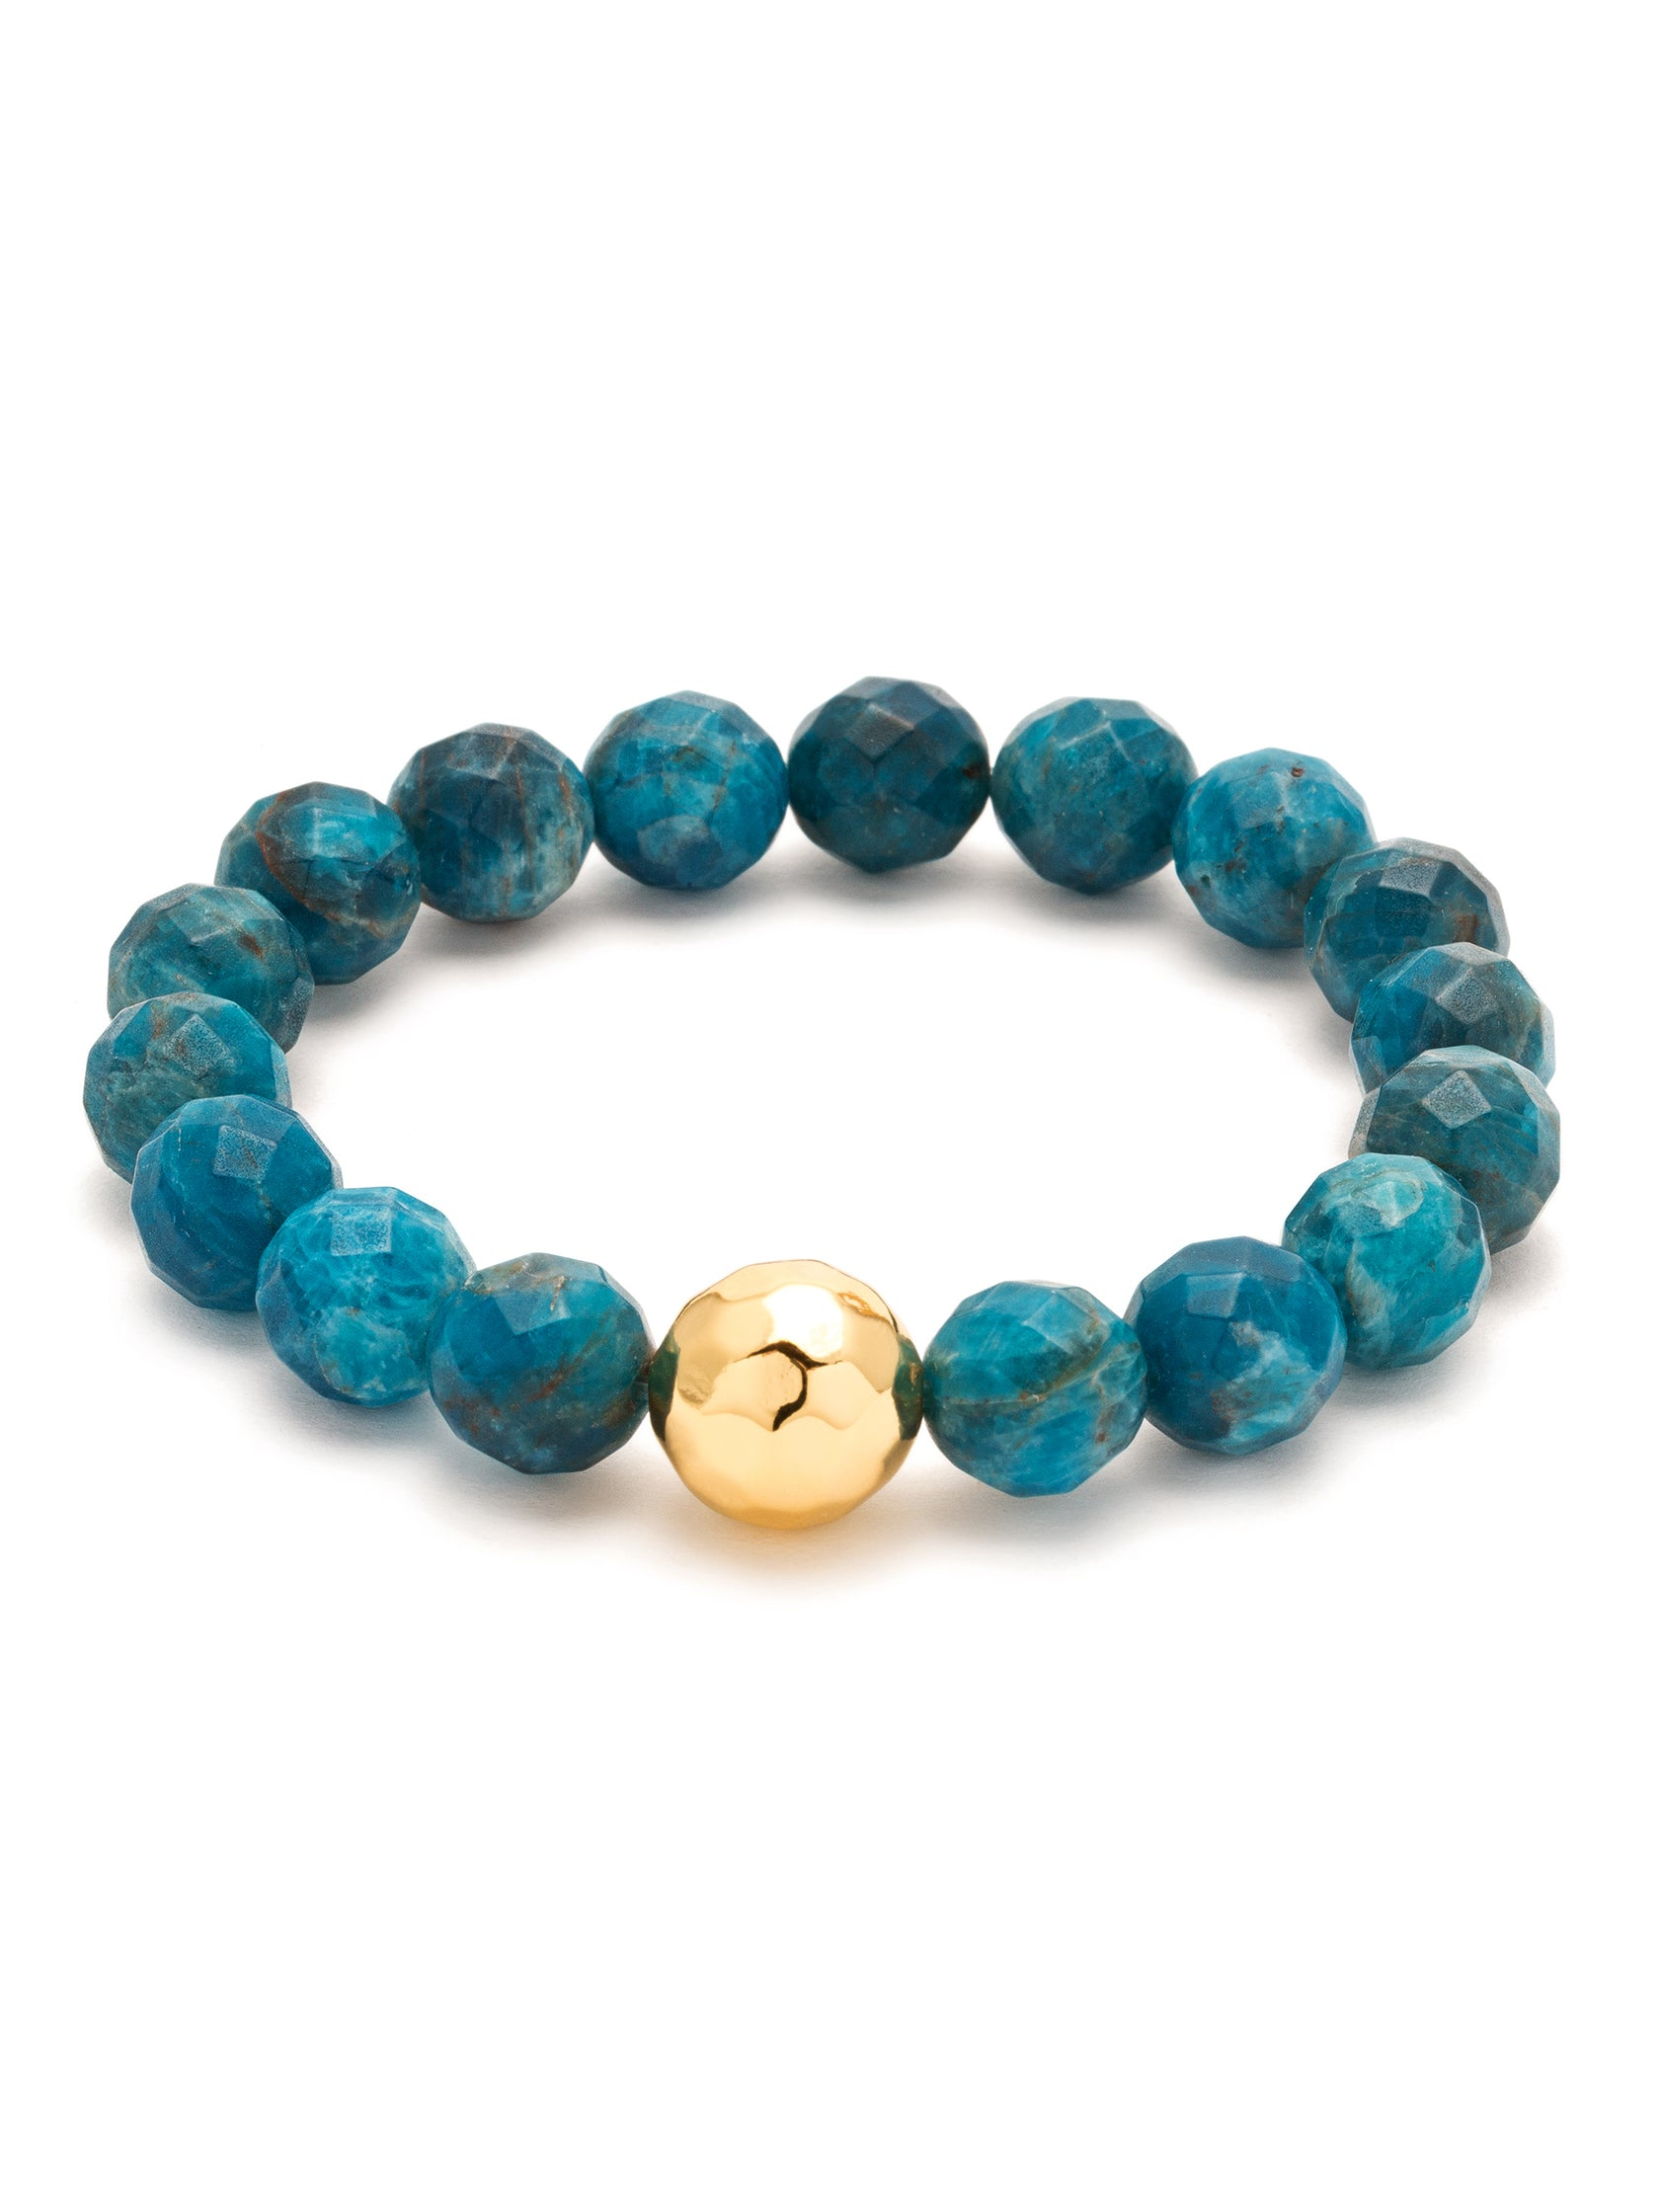 Girl outfit in a bracelet rental from Gorjana called Power Gemstone Apatite Statement Bracelet (inspiration)